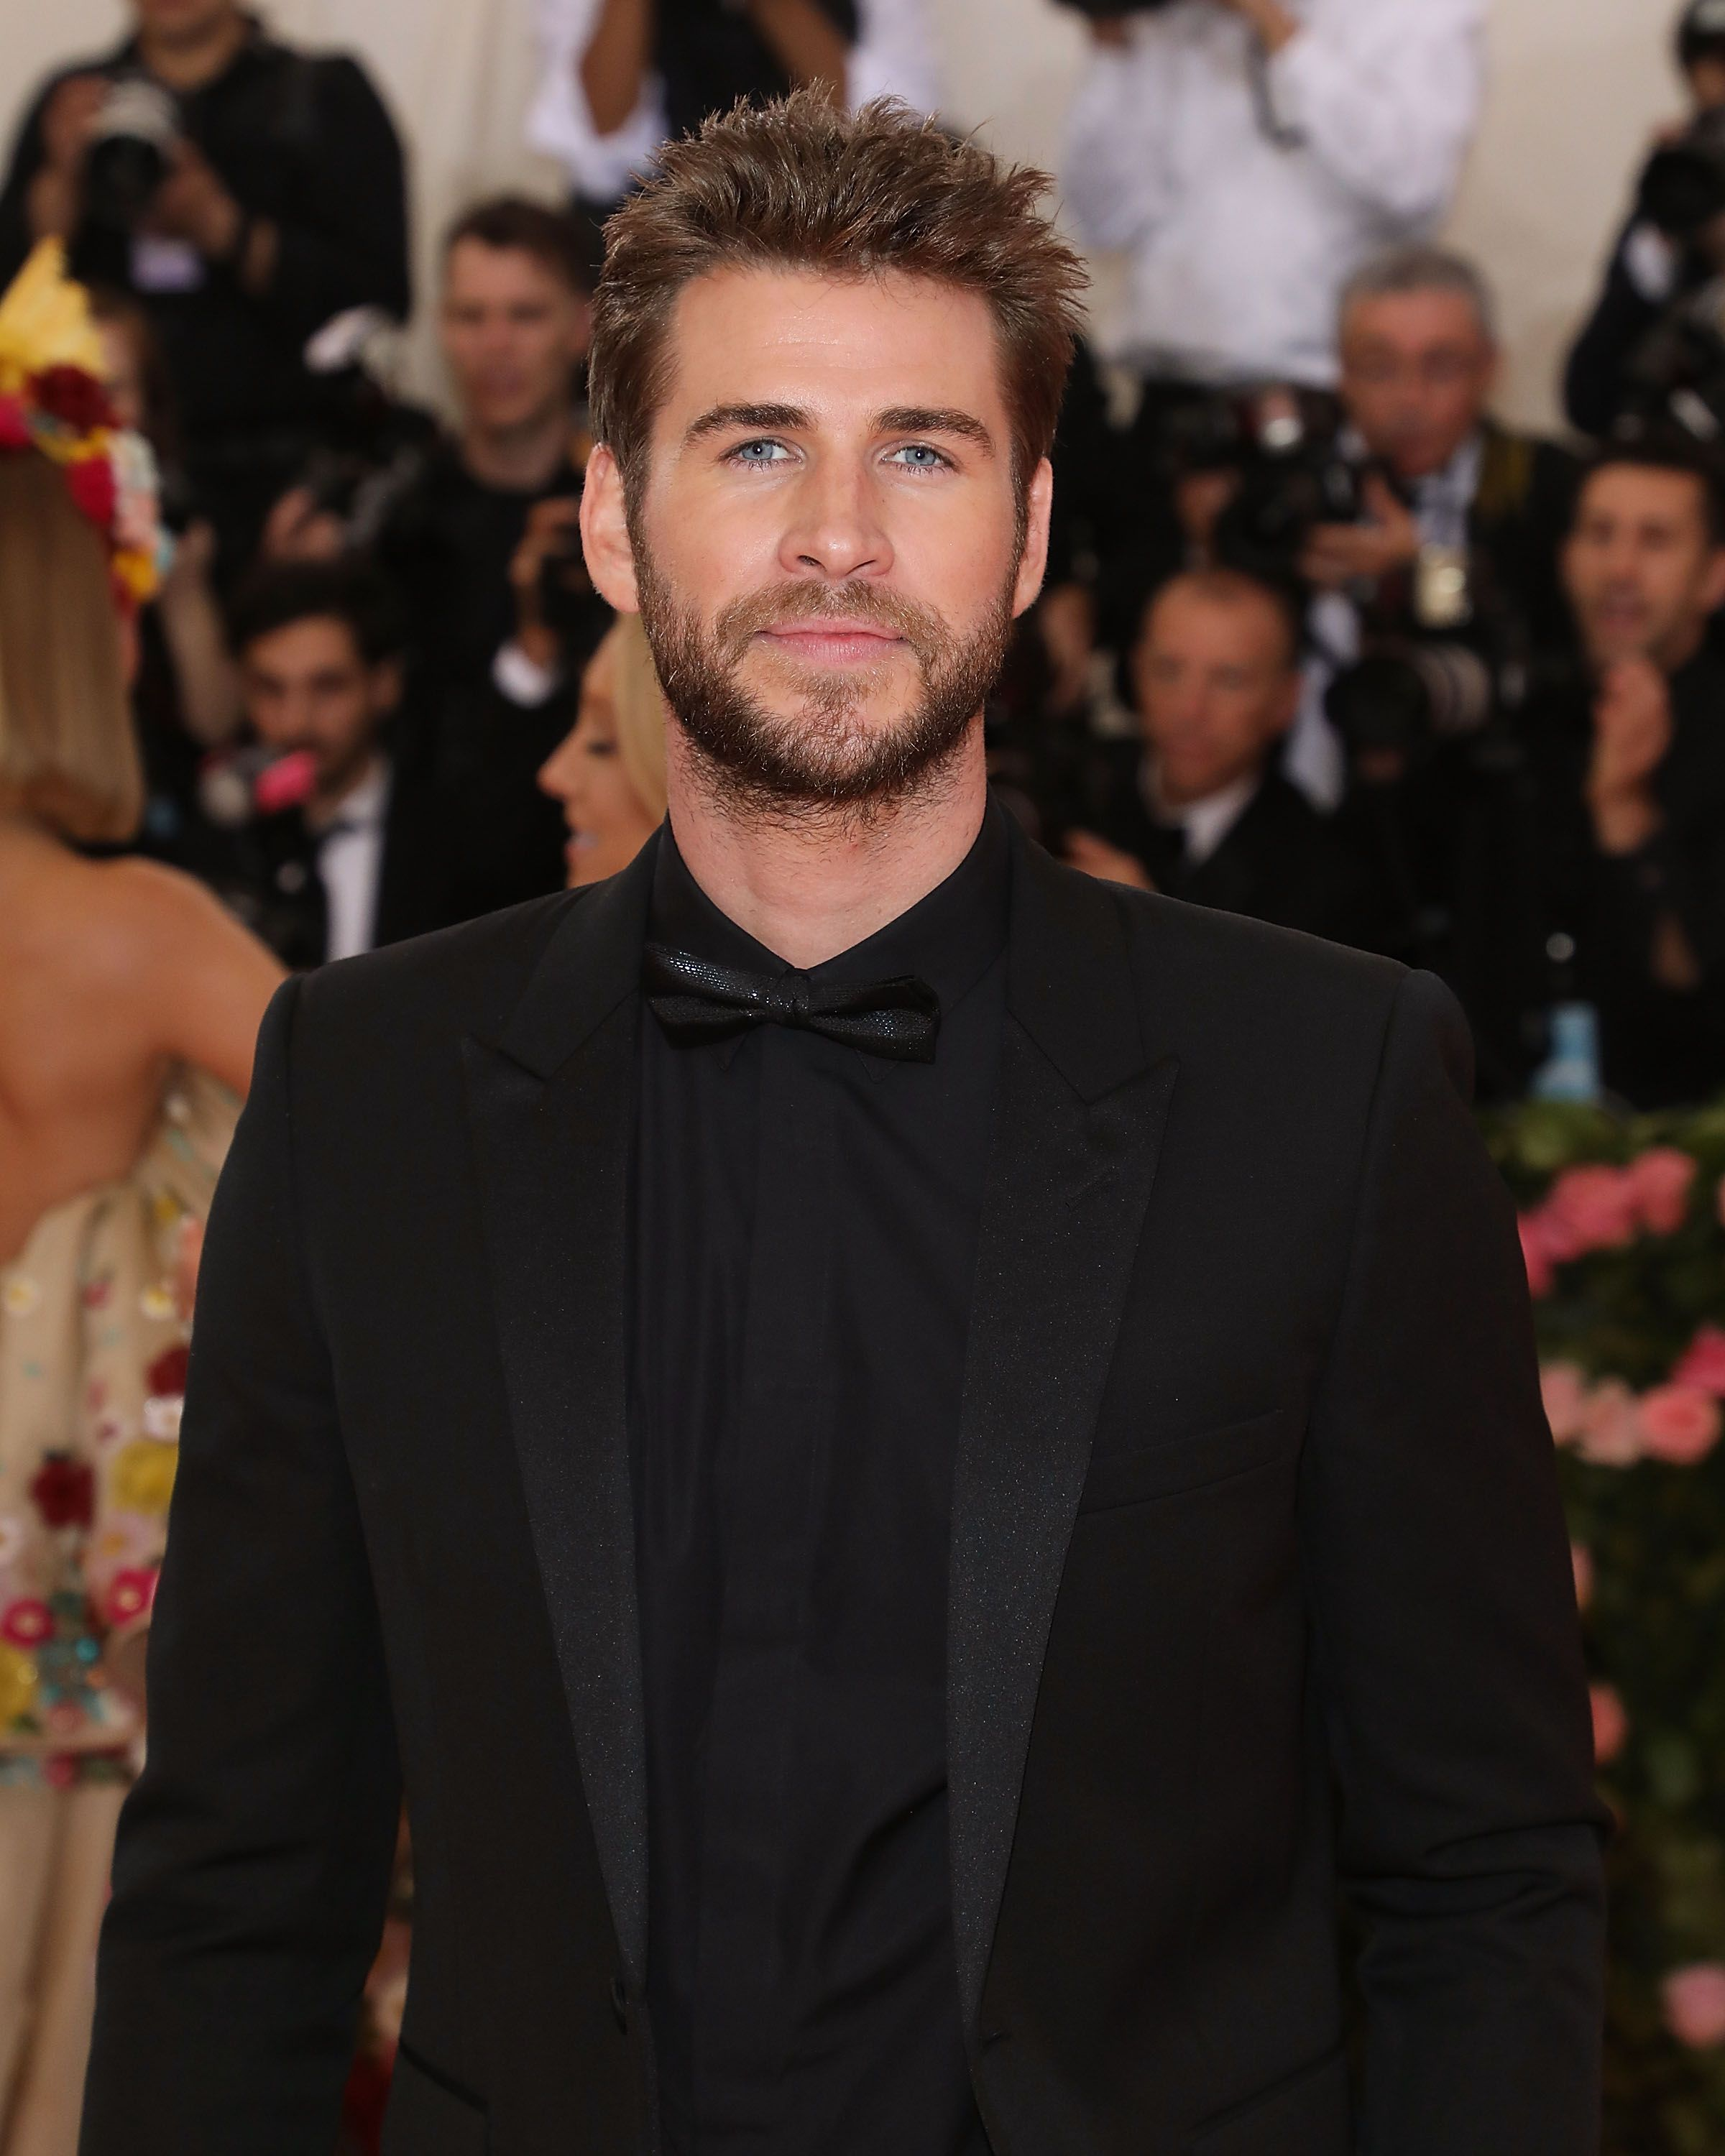 FYI, Liam Hemsworth Has Been in Australia Ever Since Miley Cyrus Announced Their Breakup